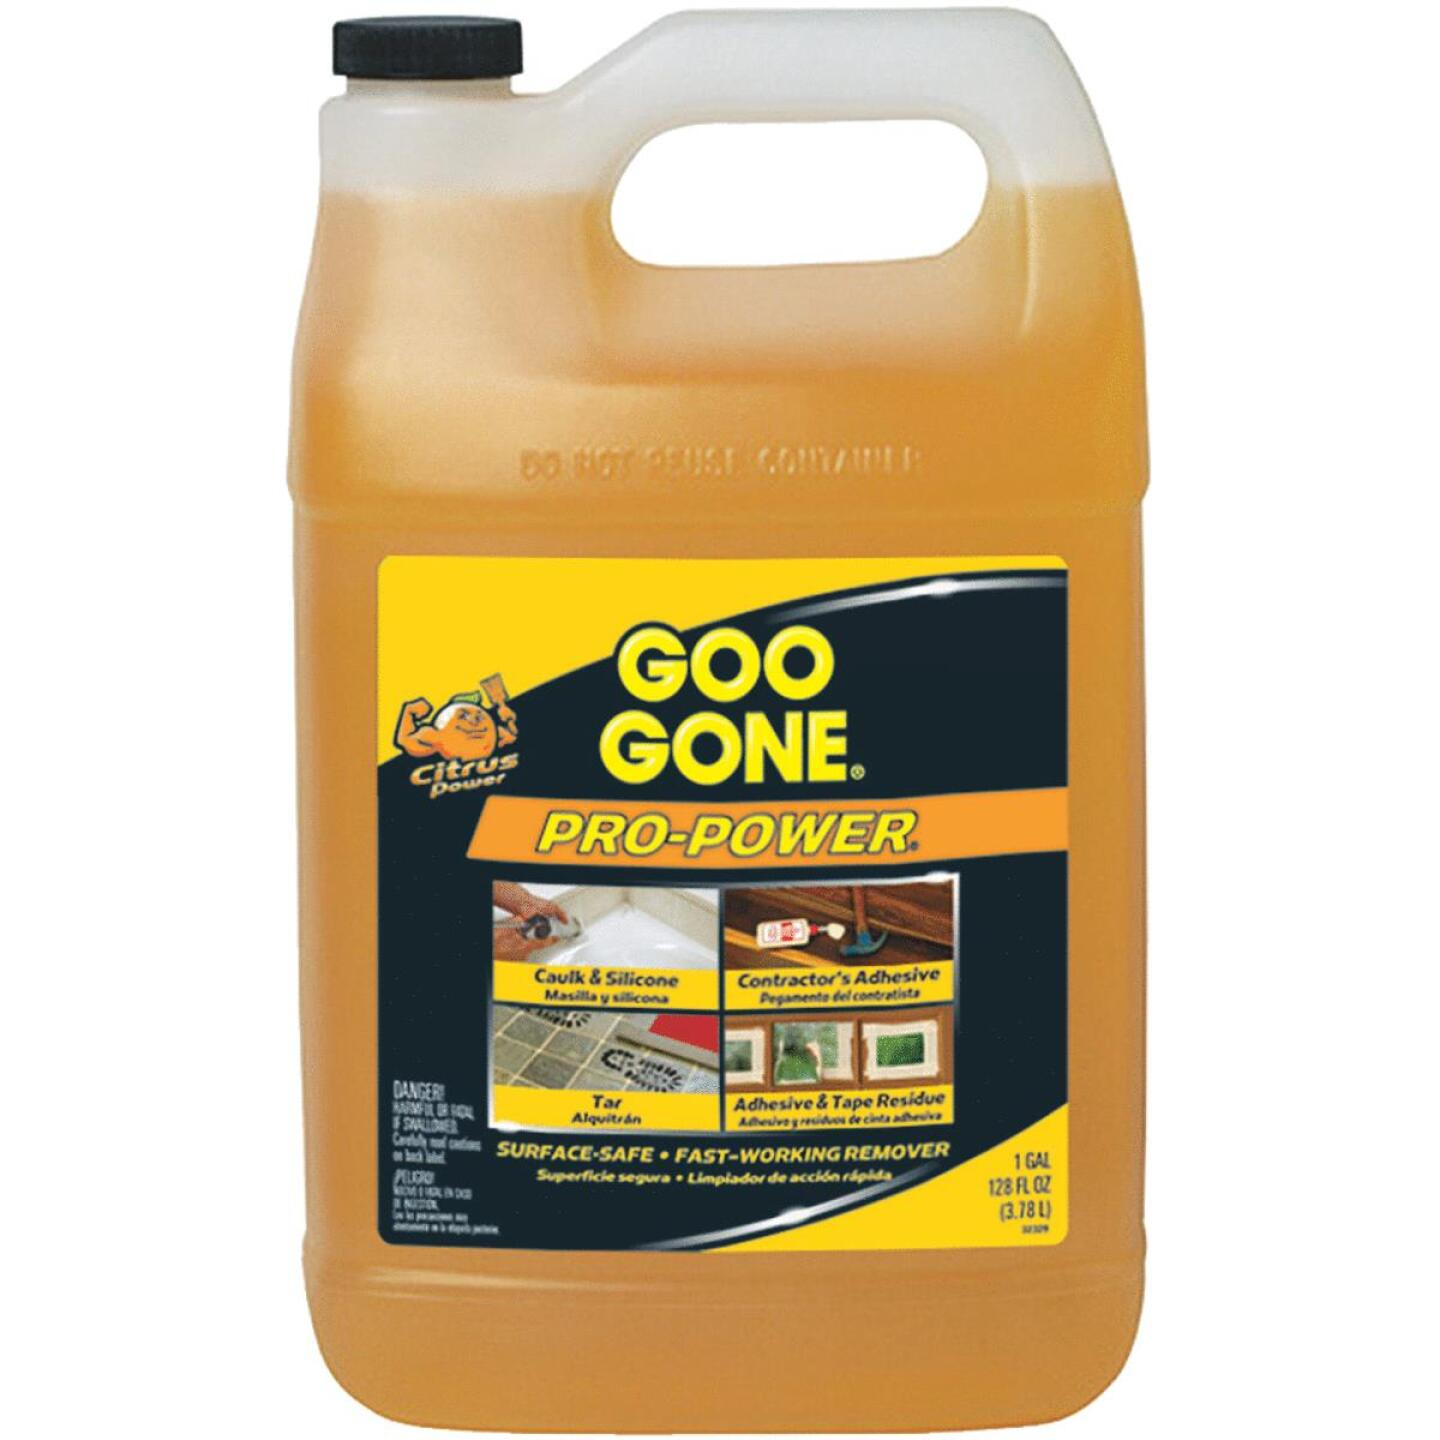 Goo Gone 1 Gal. Pro-Power Adhesive Remover Image 219